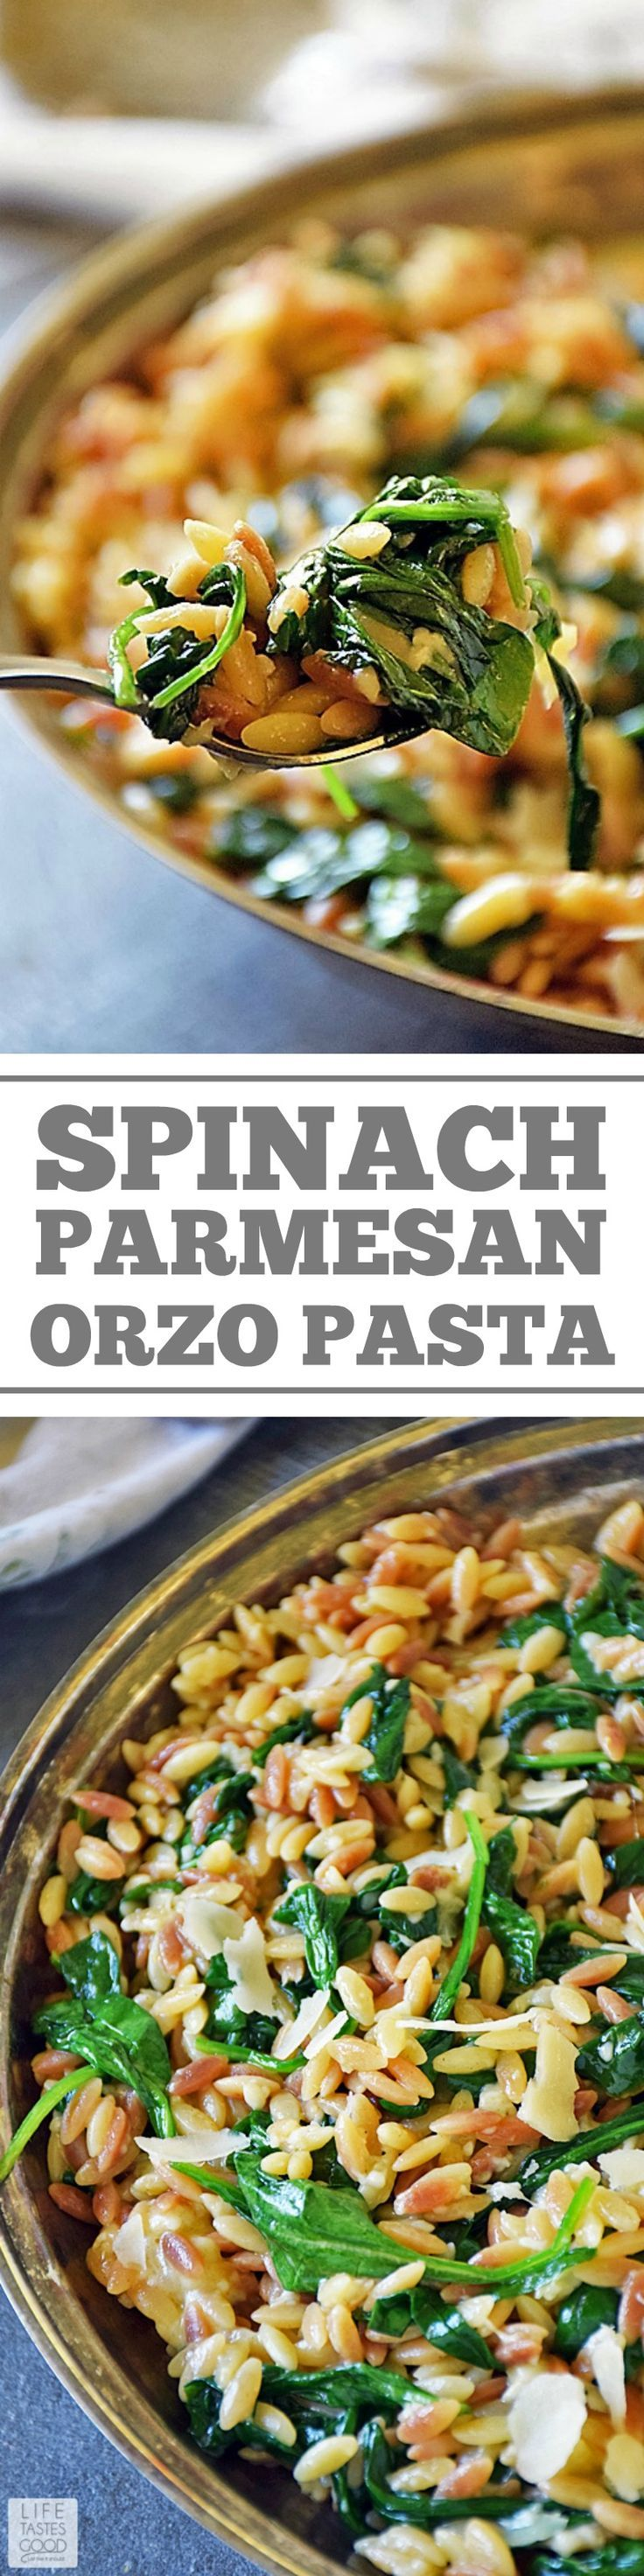 Orzo Pasta with Spinach and Parmesan is an easy recipe using fresh ingredients to maximize flavor. It makes an impressive side dish, but if you want an easy all-in-one meal, just add chicken for a delicious dinner that's quick and easy any night of the week.